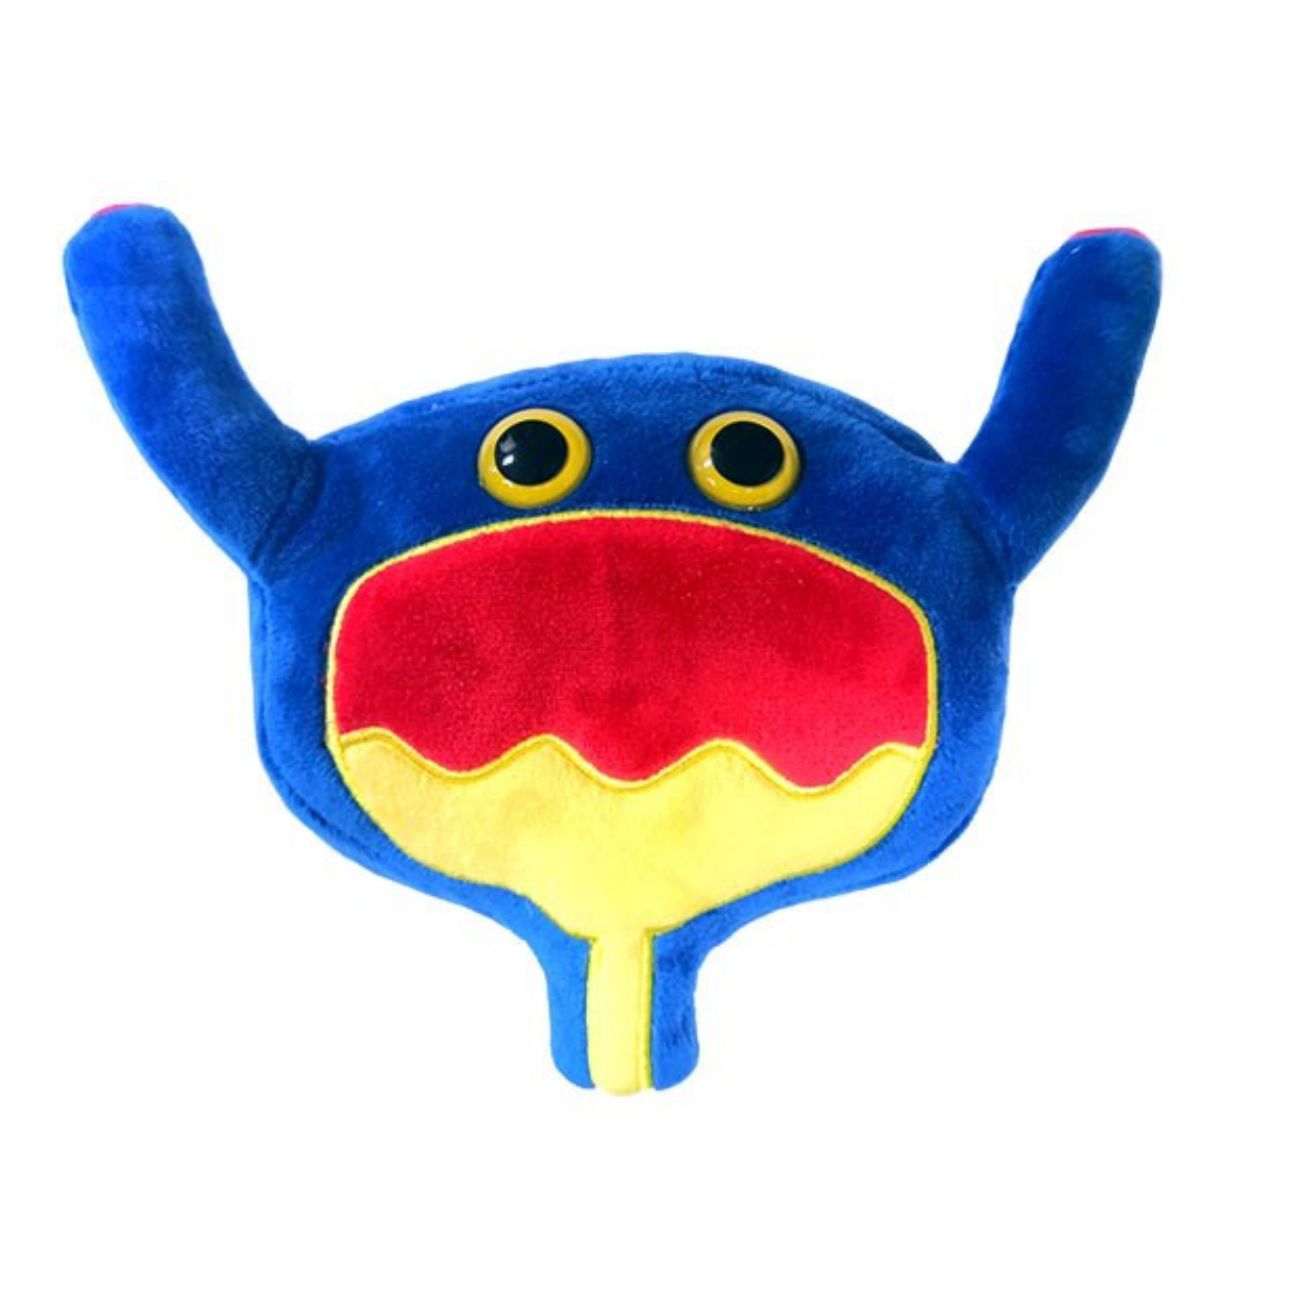 Giant Microbes Original Bladder